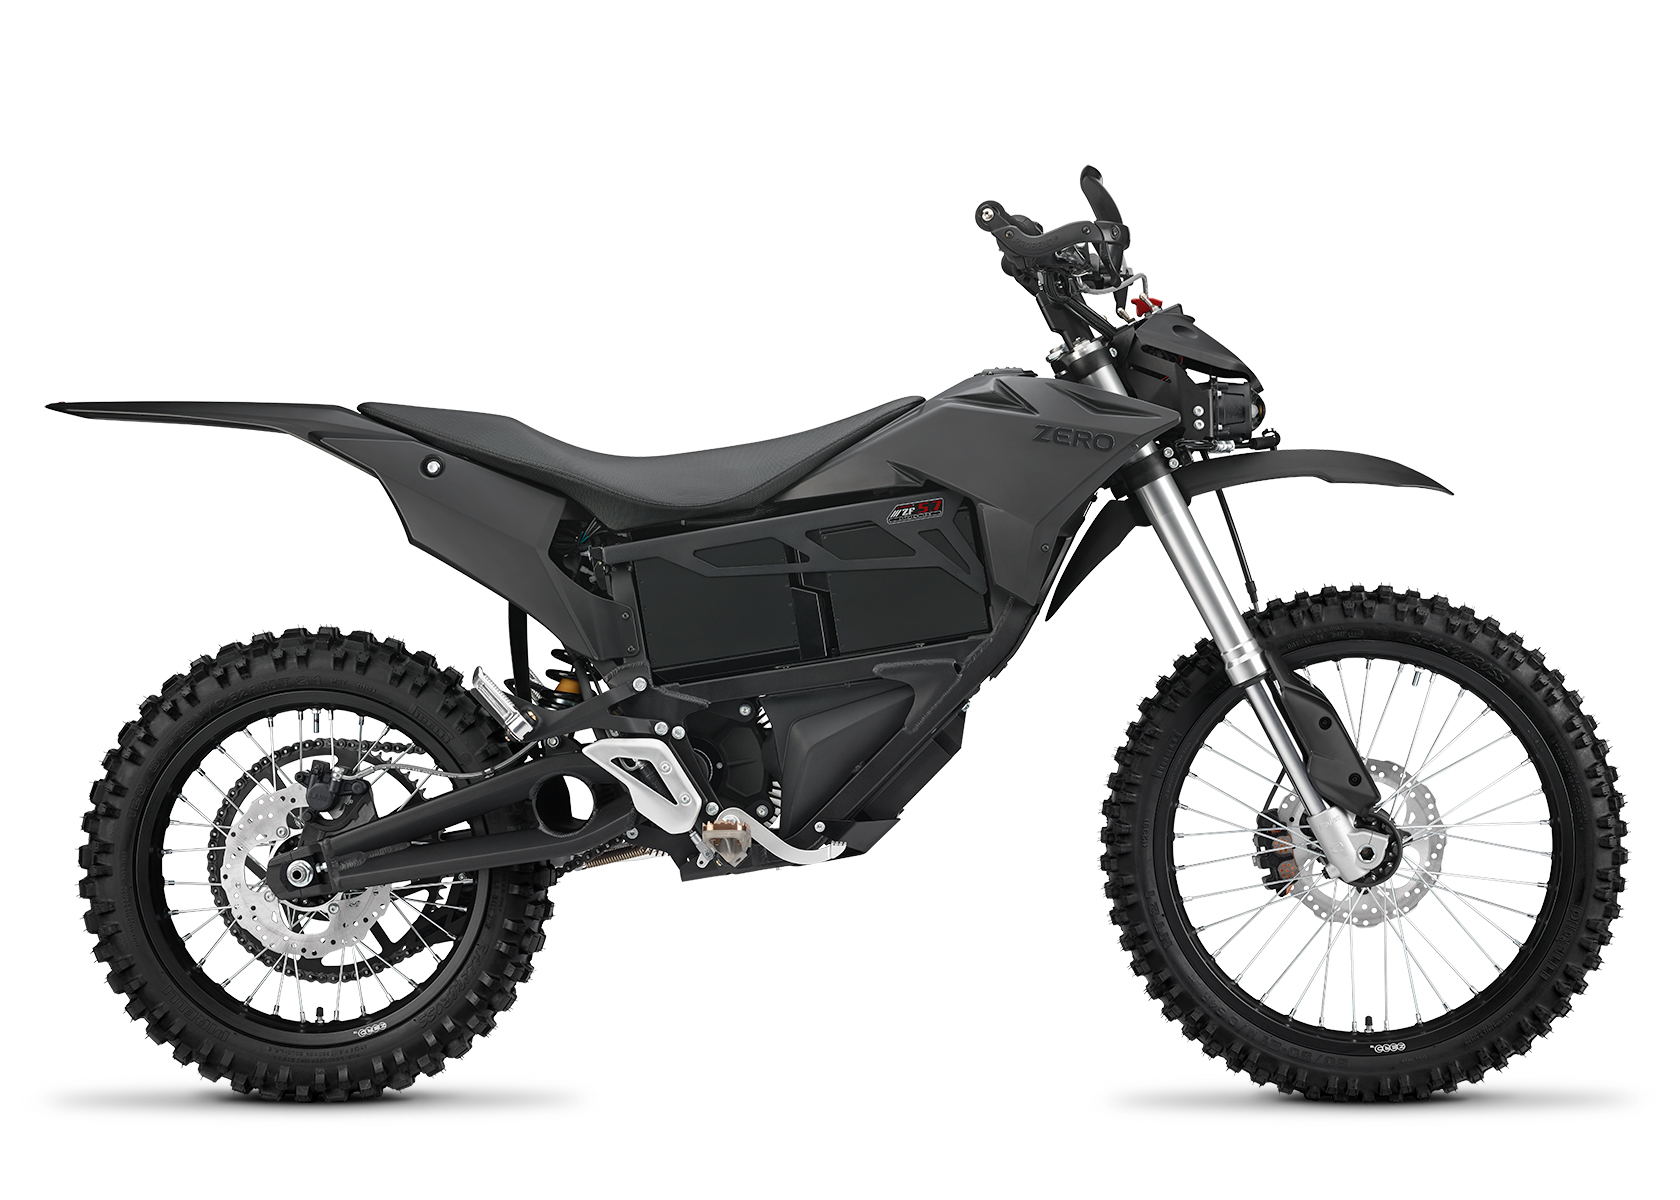 2015 Zero MMX Electric Motorcycle: Right profile, White Background